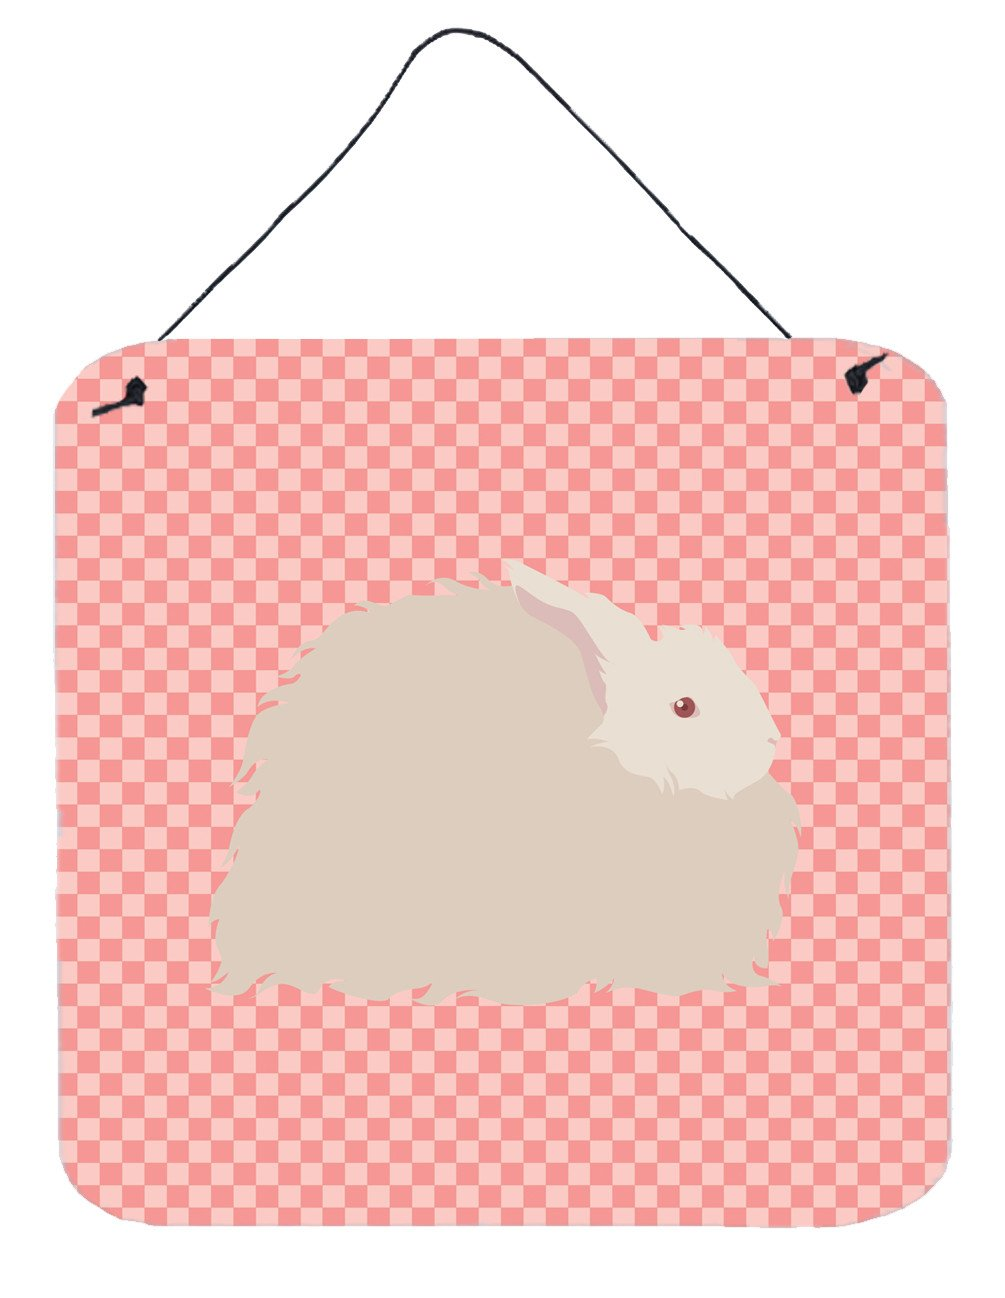 Fluffy Angora Rabbit Pink Check Wall or Door Hanging Prints BB7959DS66 by Caroline's Treasures